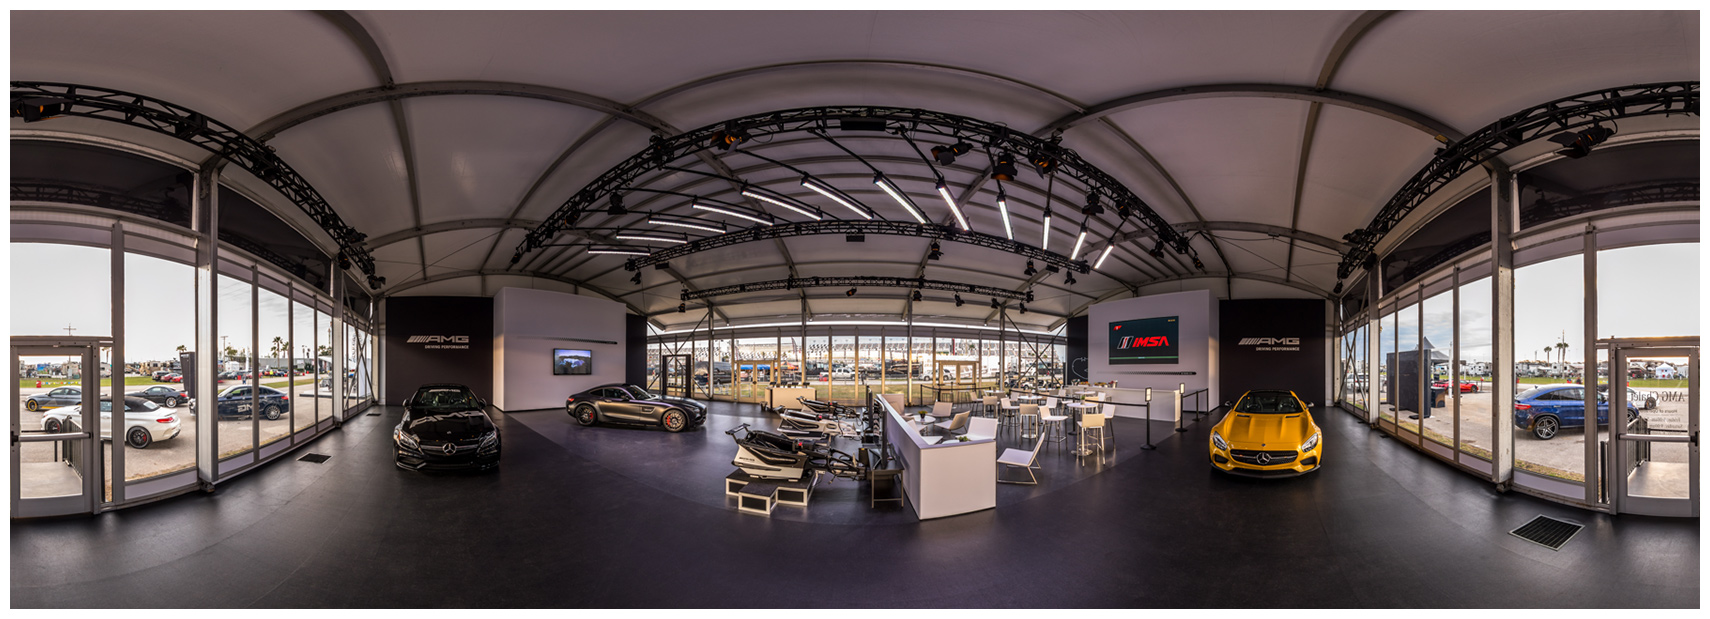 mercedes-benz-hospitality-daytona-speedway-rolex-360-panoramic